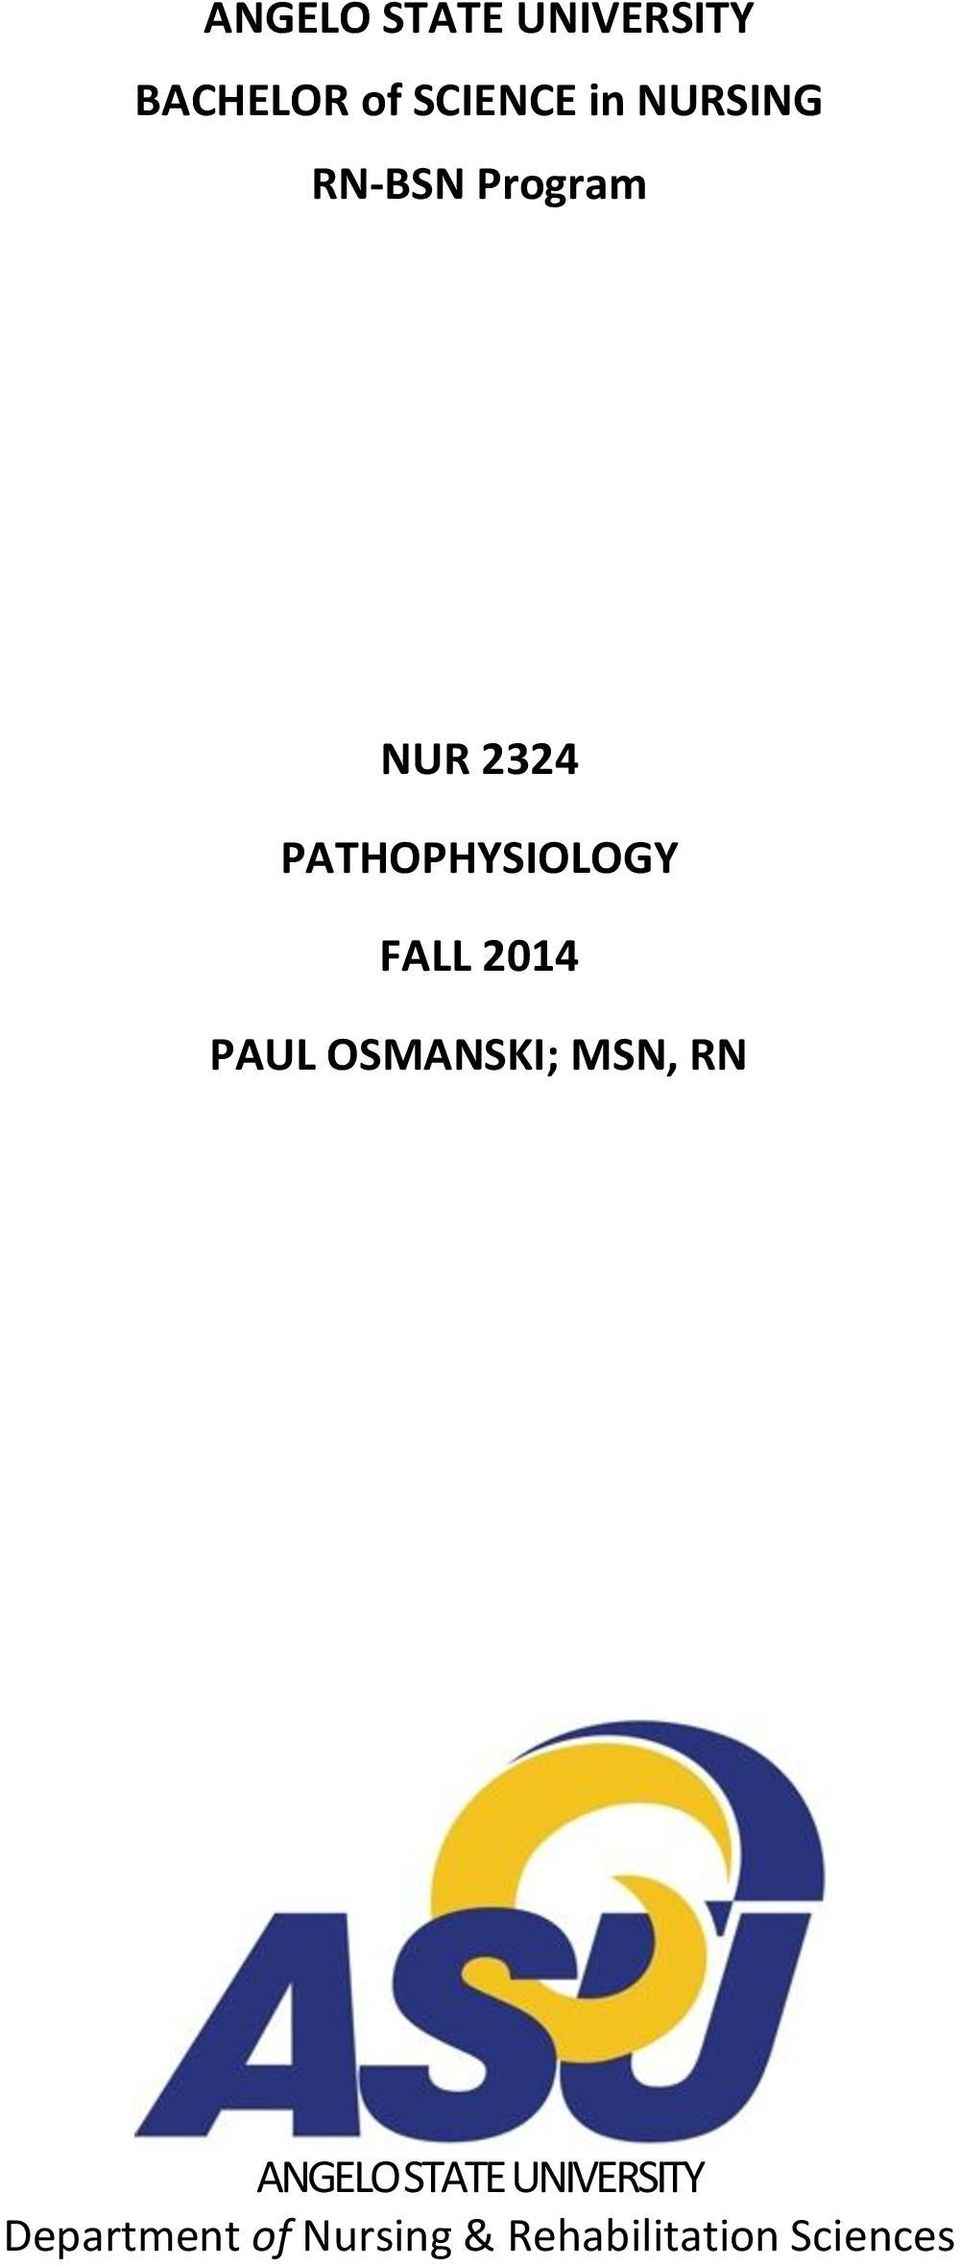 FALL 2014 PAUL OSMANSKI; MSN, RN ANGELO STATE